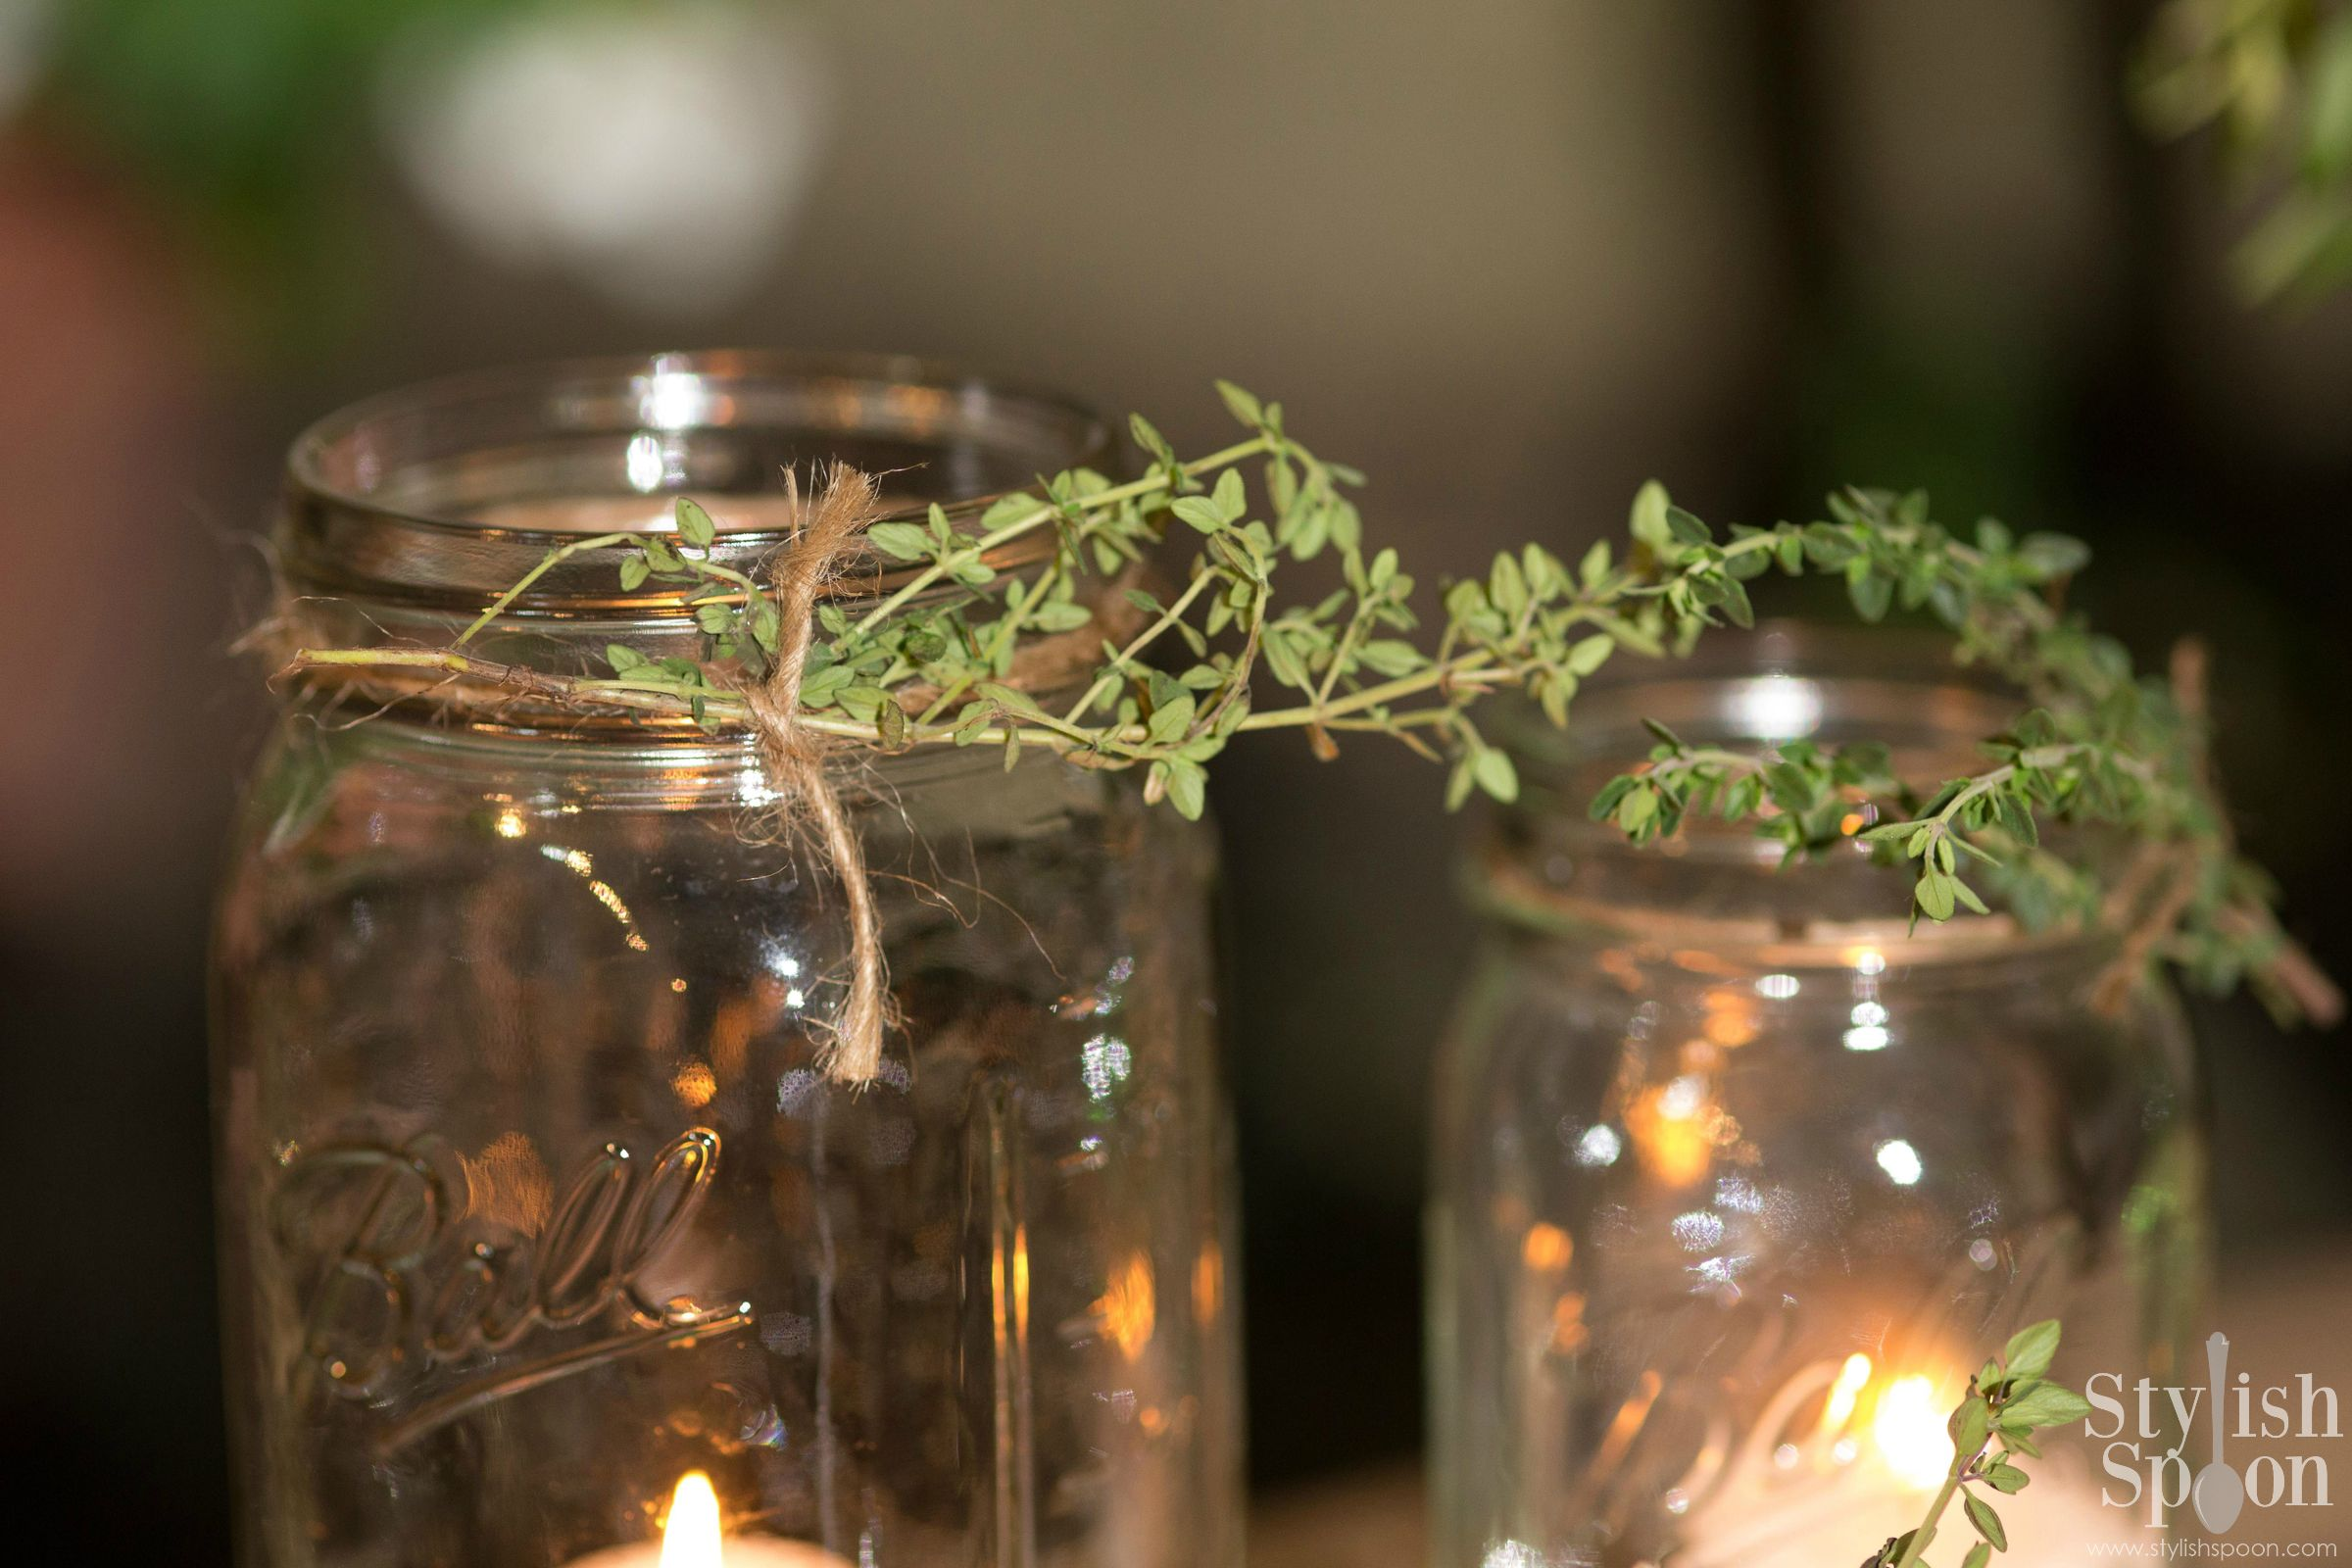 Fresh thyme sprigs were tied around the rims with natural color twine